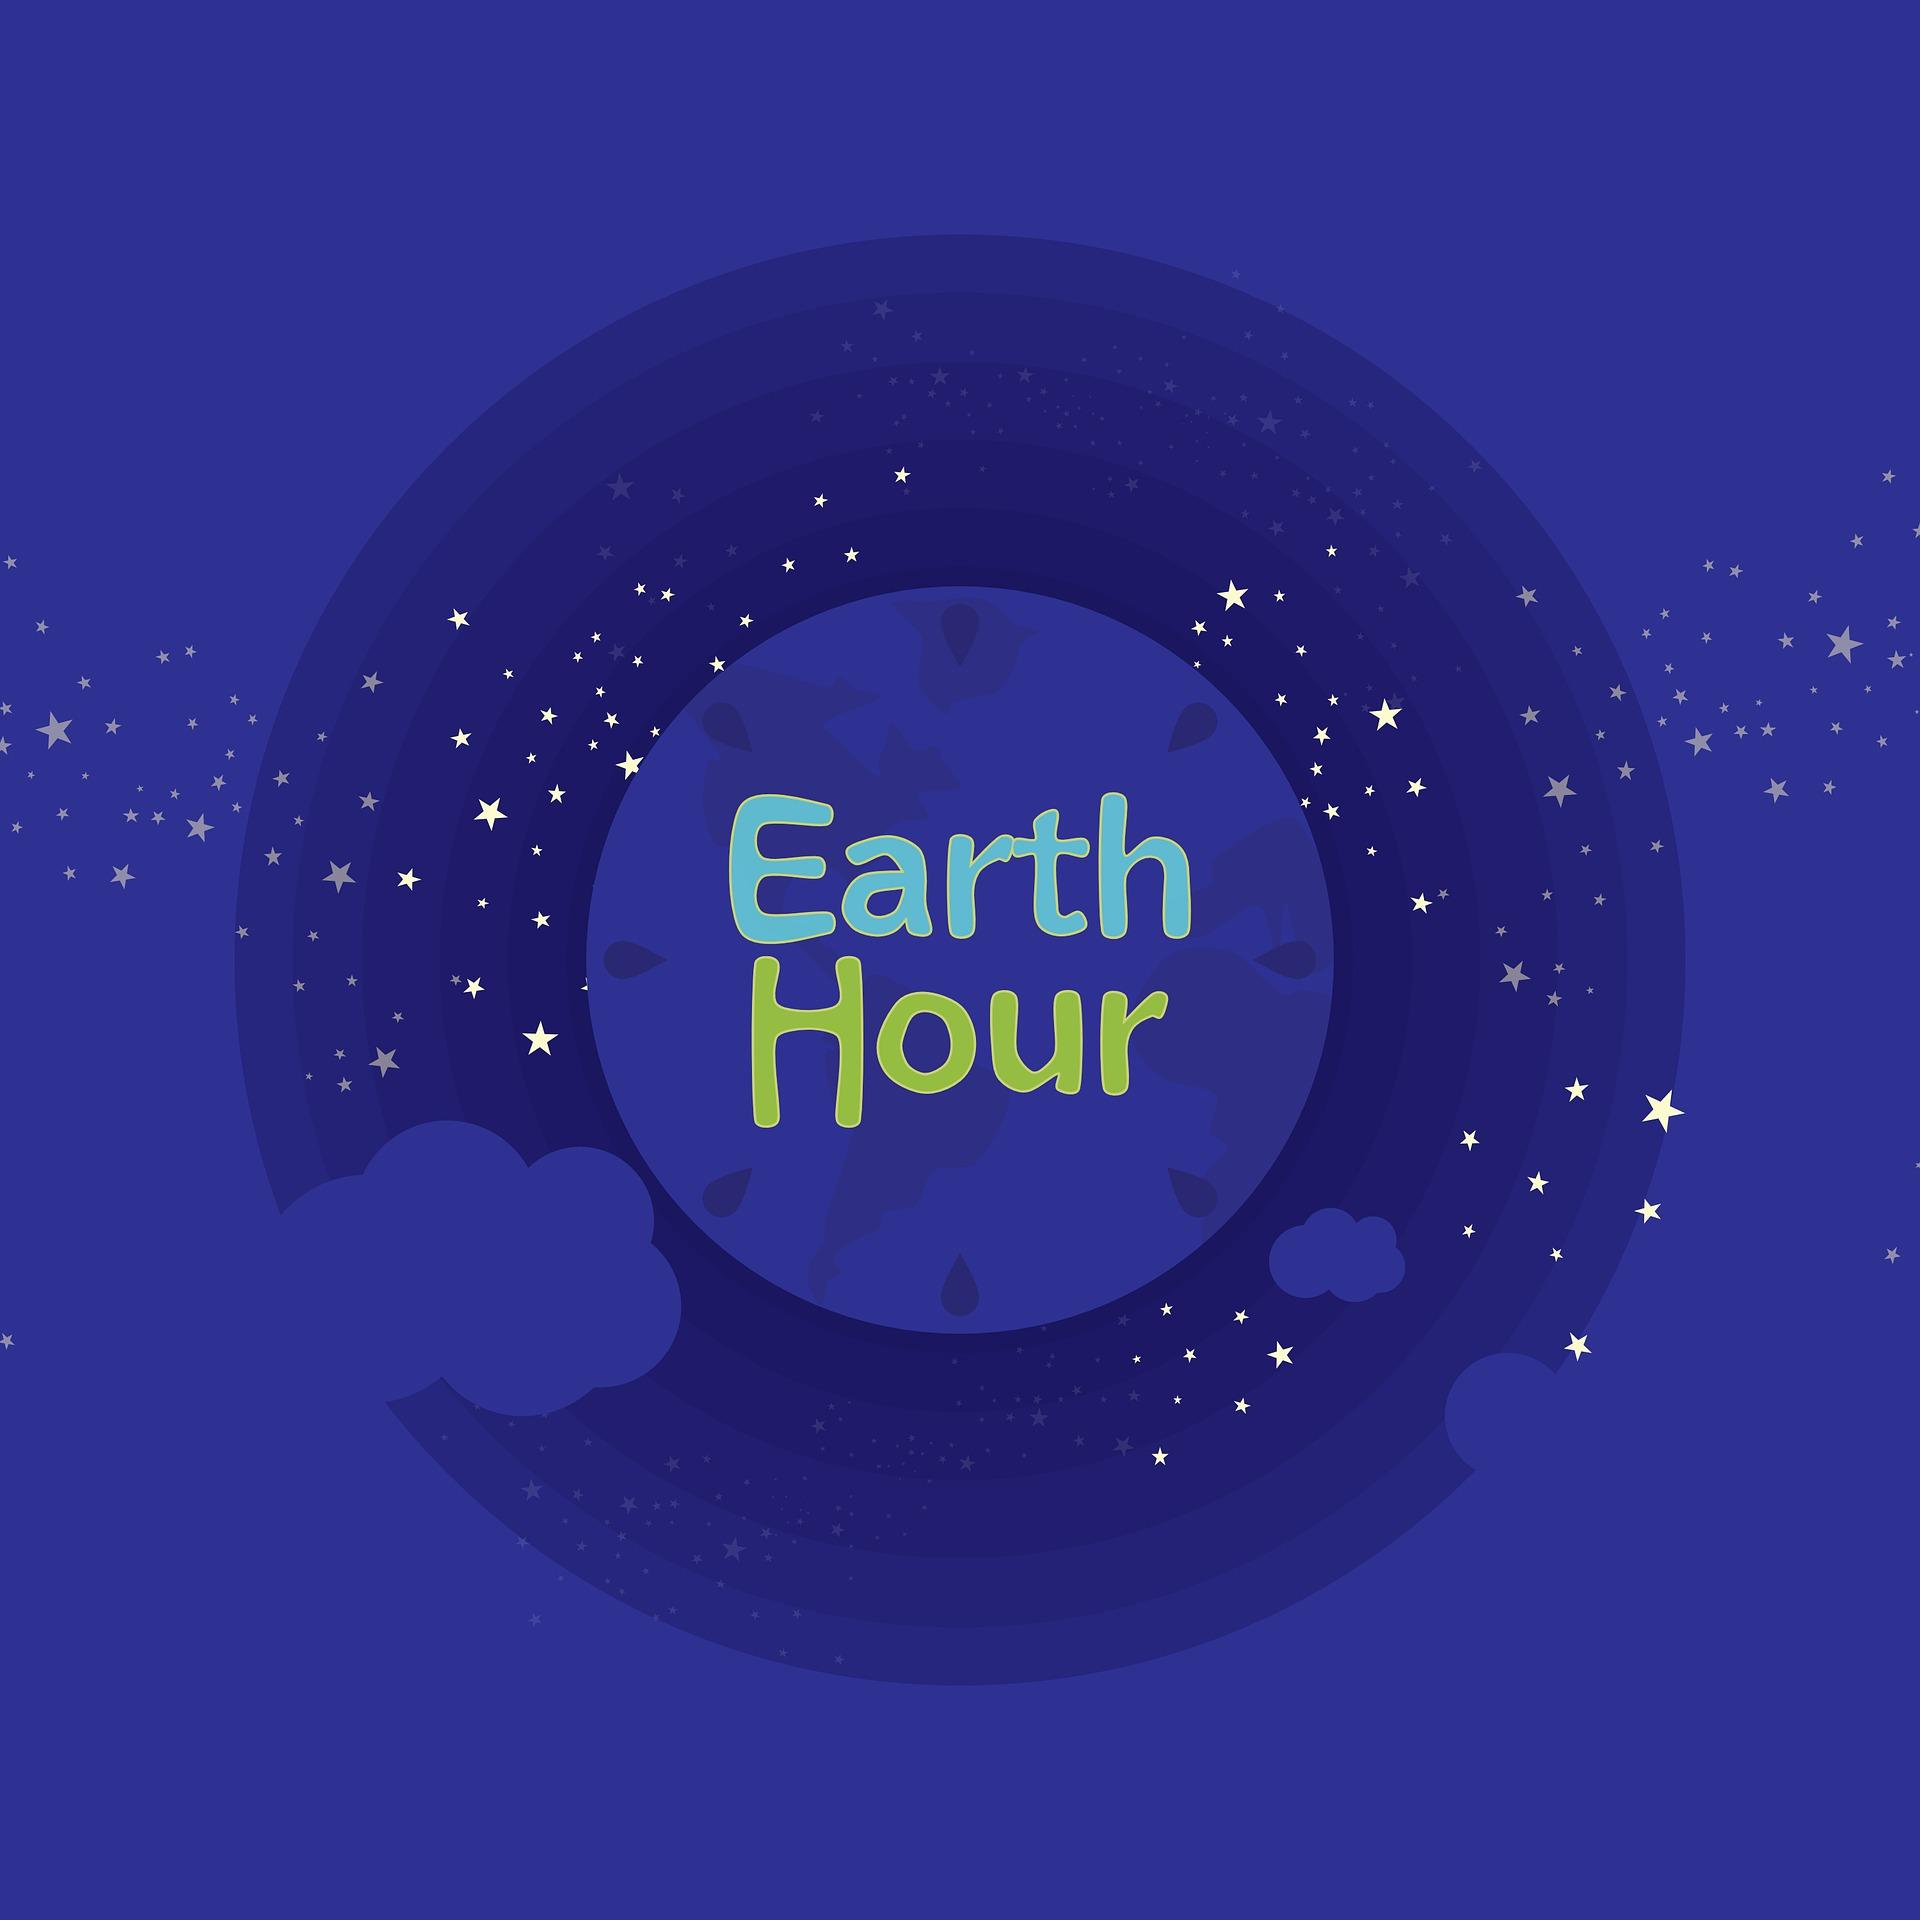 Blue image showing the planet  with the words Earth Hour